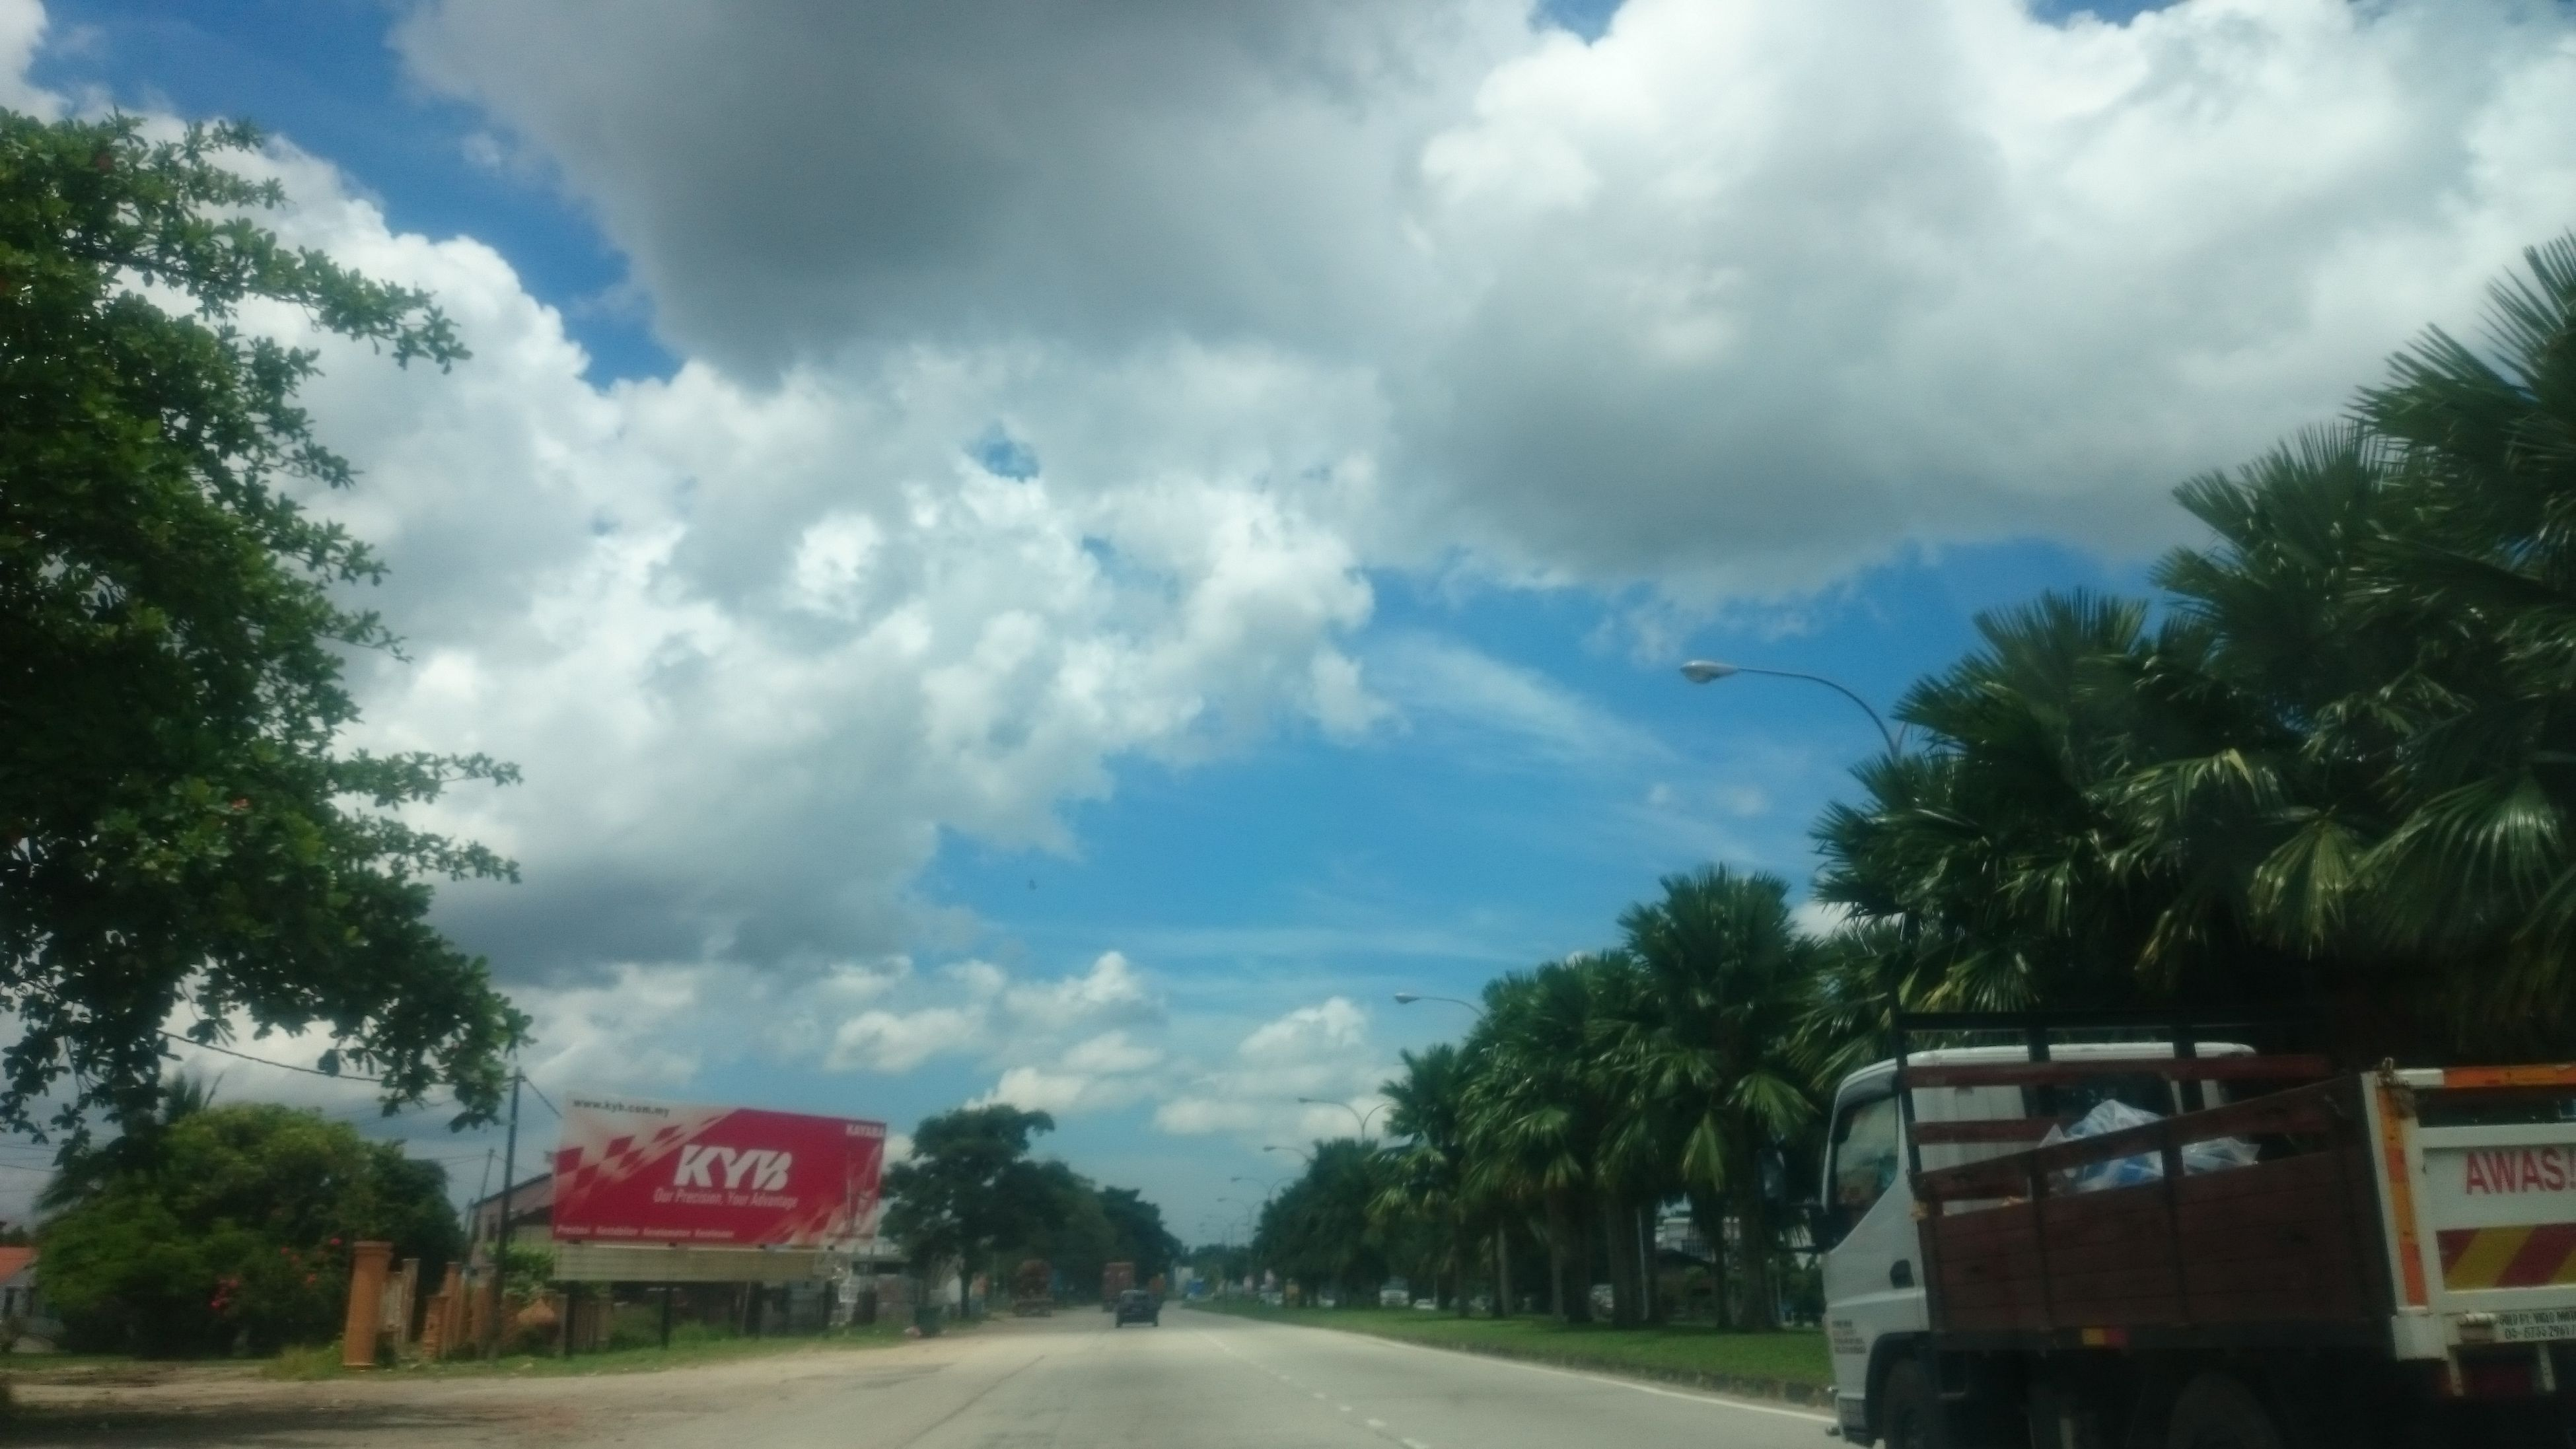 cloud - sky, sky, transportation, tree, mode of transport, land vehicle, no people, road, outdoors, day, nature, storm cloud